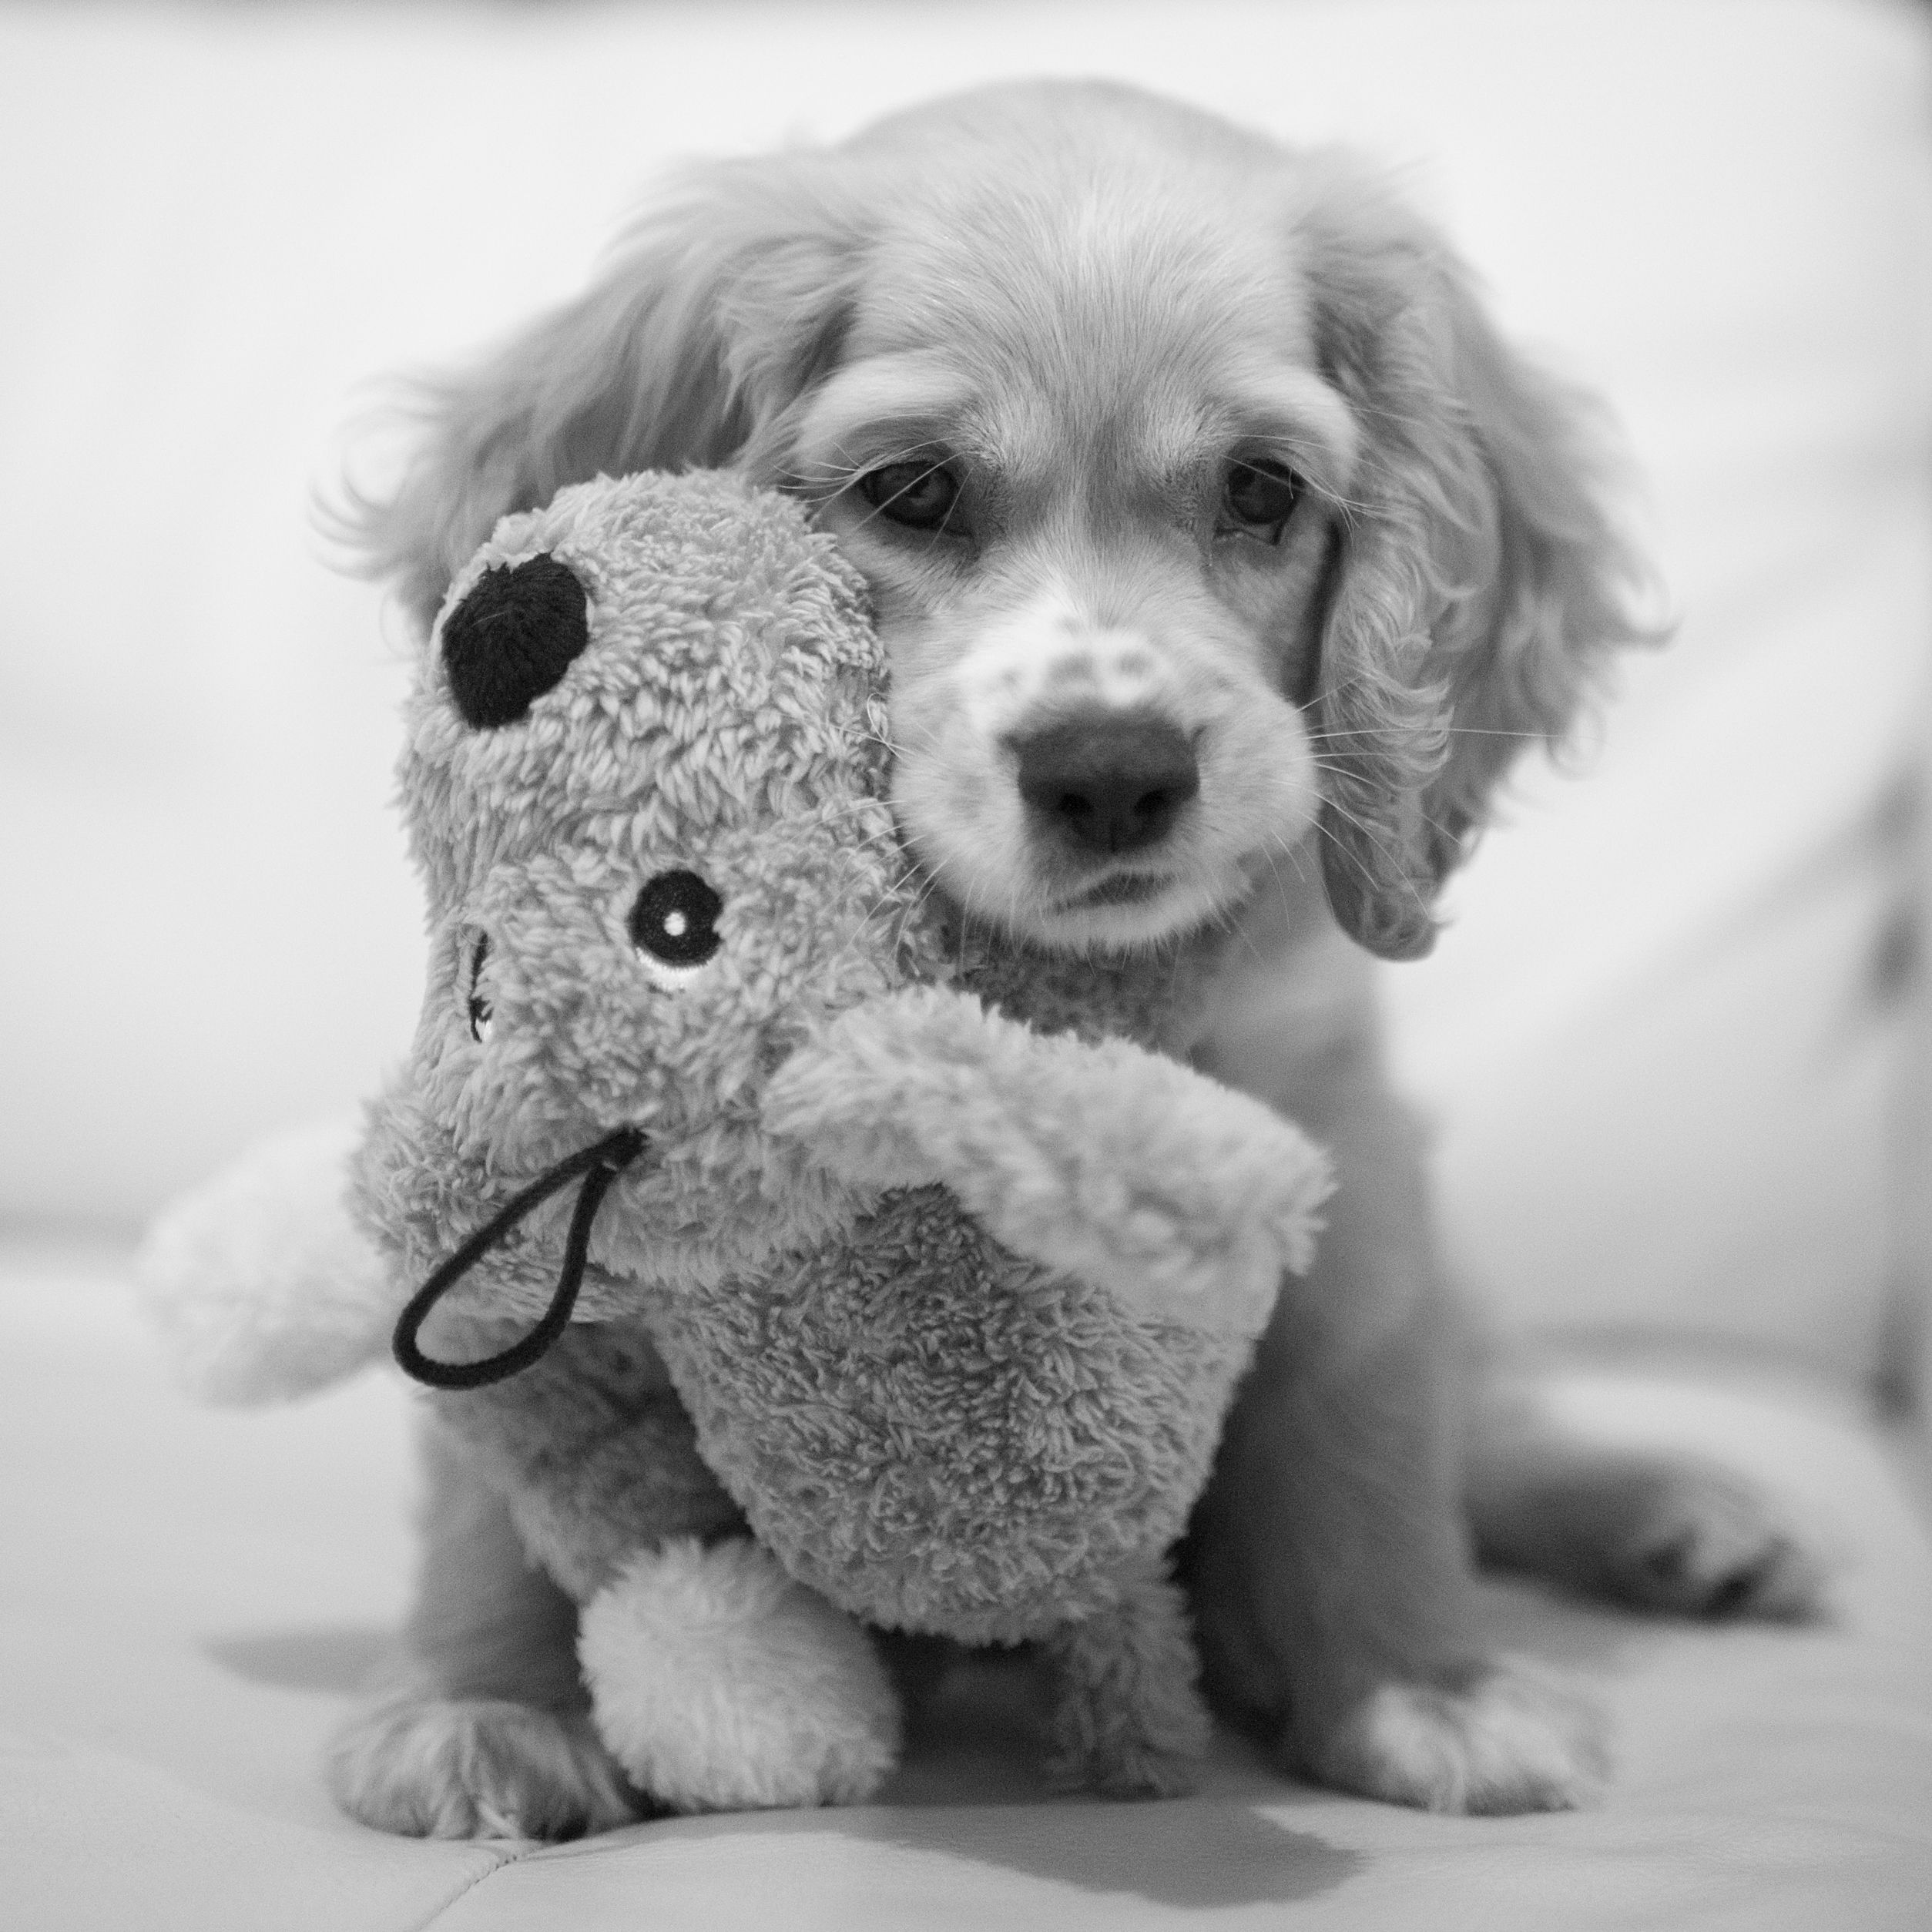 Cocker Spaniel.Puppy with its own Puppy Cuddly Toy